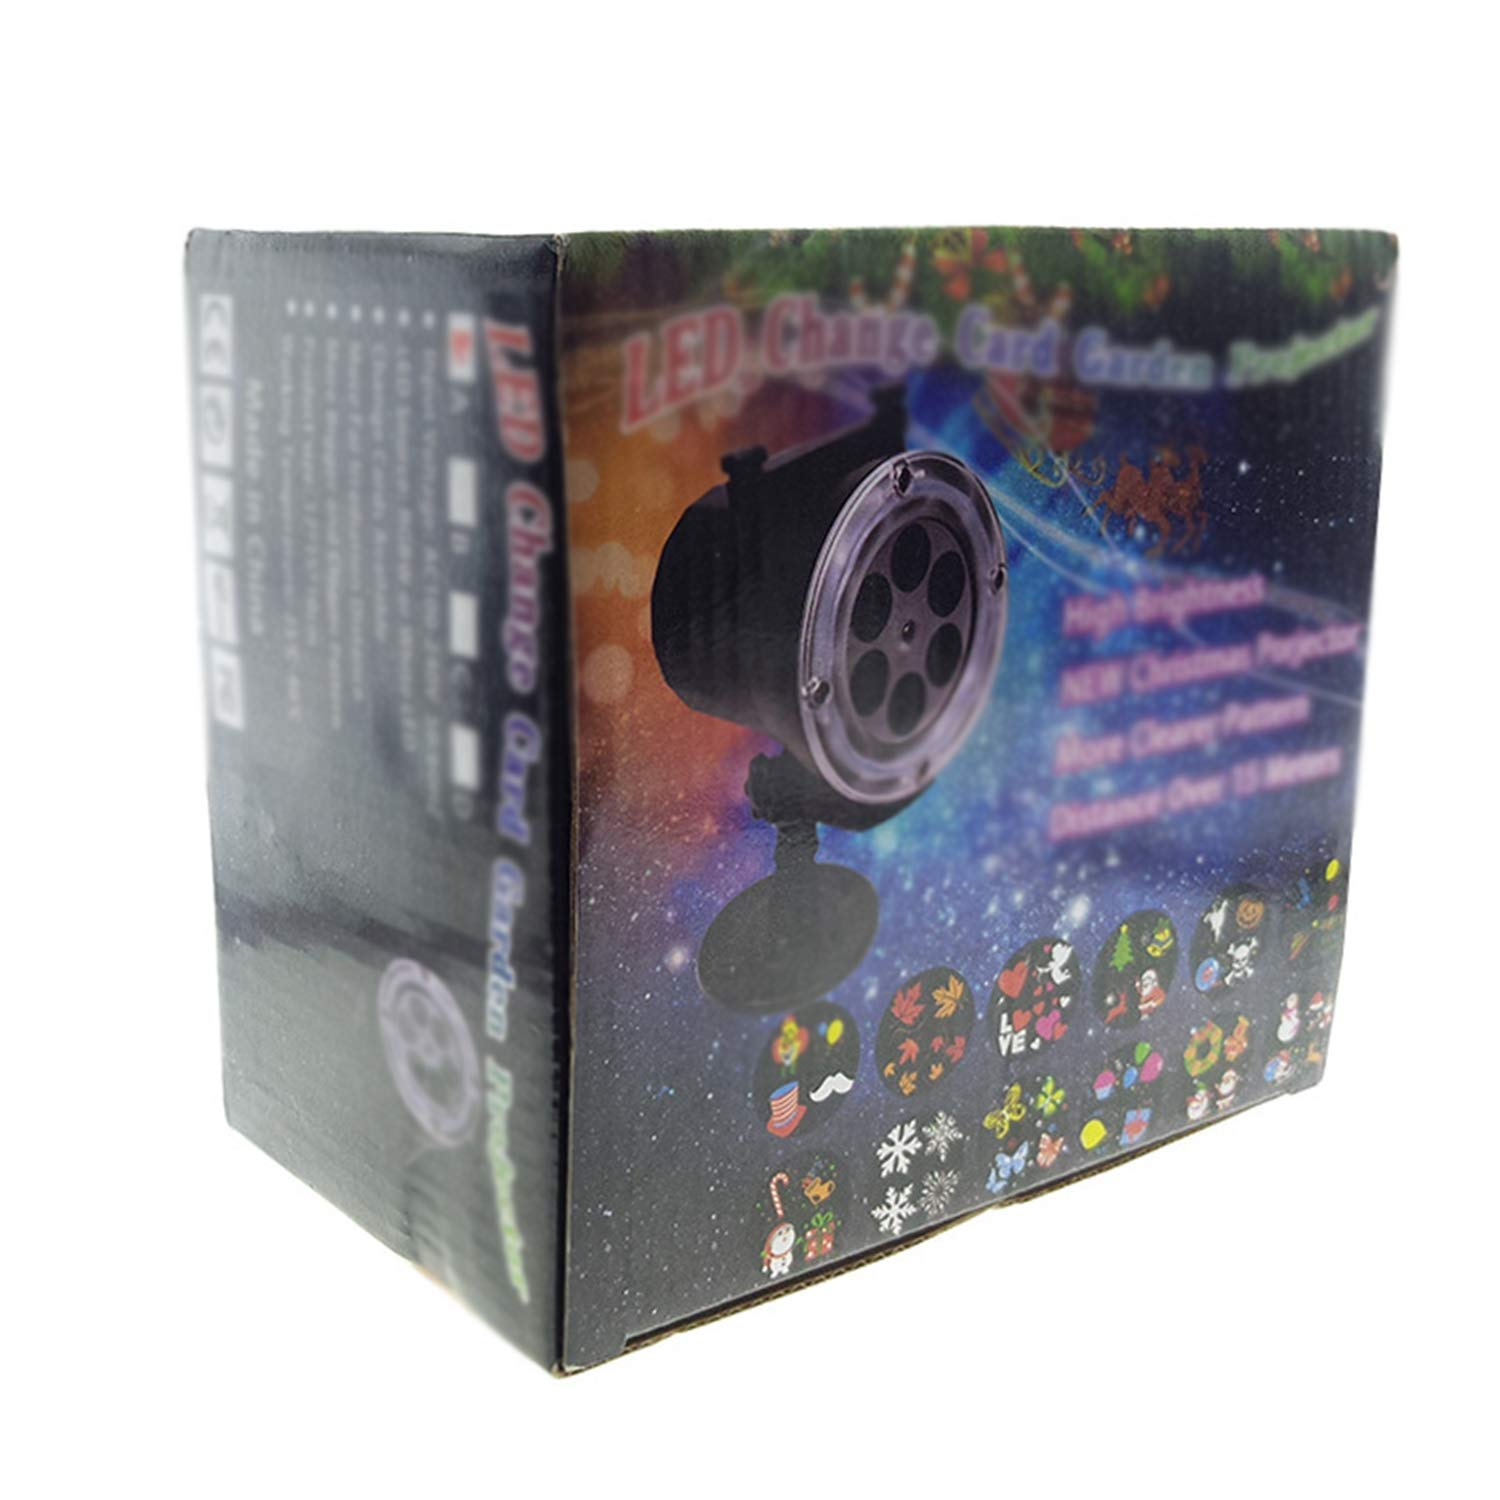 Projetor led Luz decorativa Natalina Multicores Outdoor/Indoor 48 imagens ip65 12w